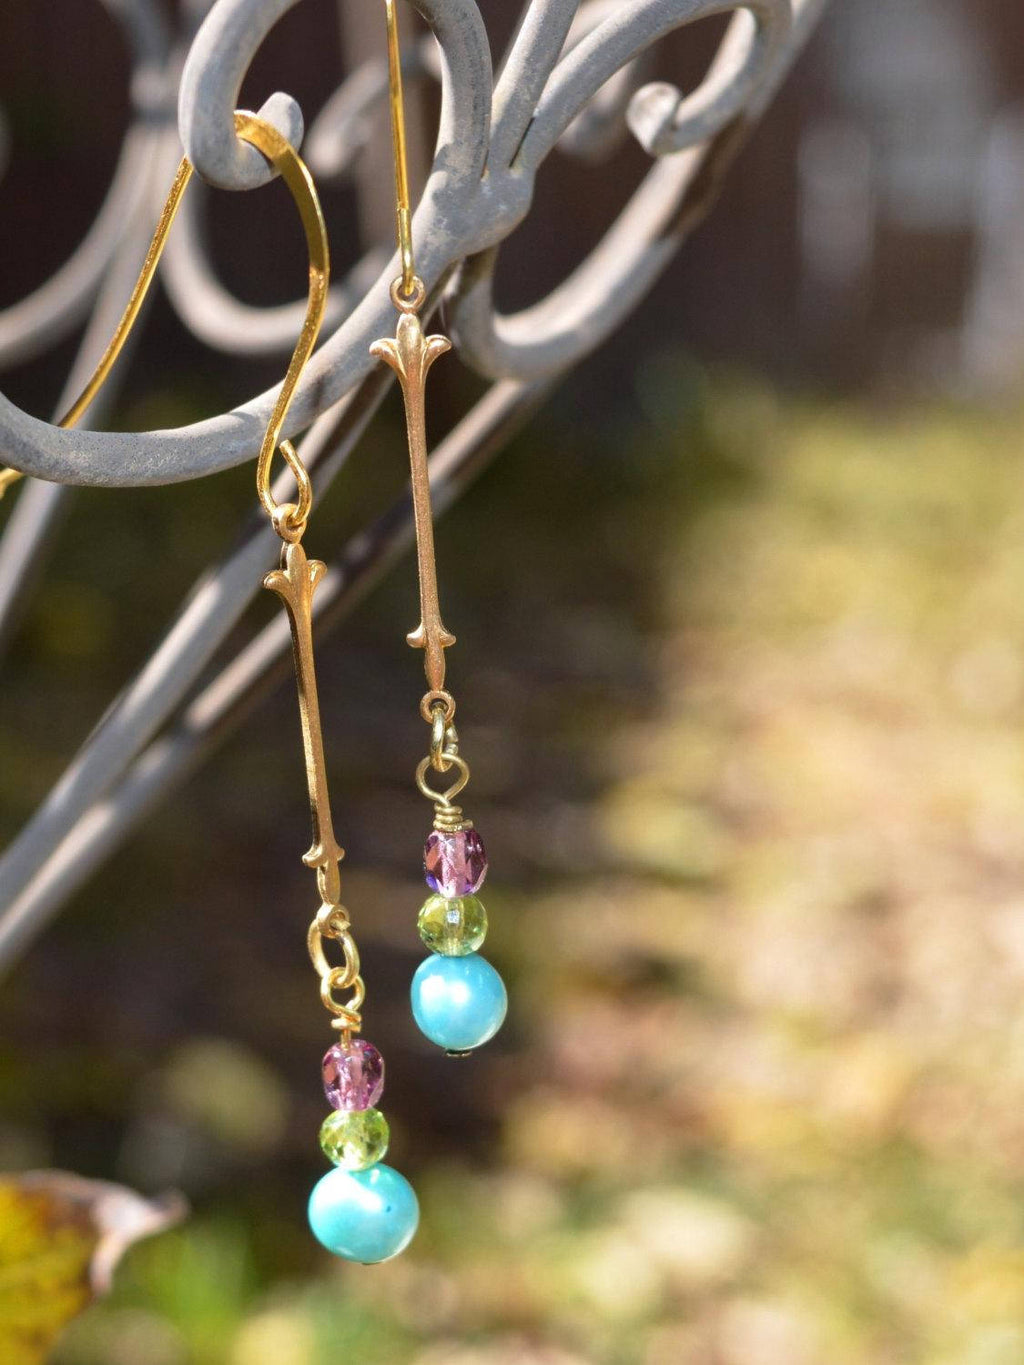 Long gold earrings with blue freshwater pearl, green peridot bead, and purple crystal.